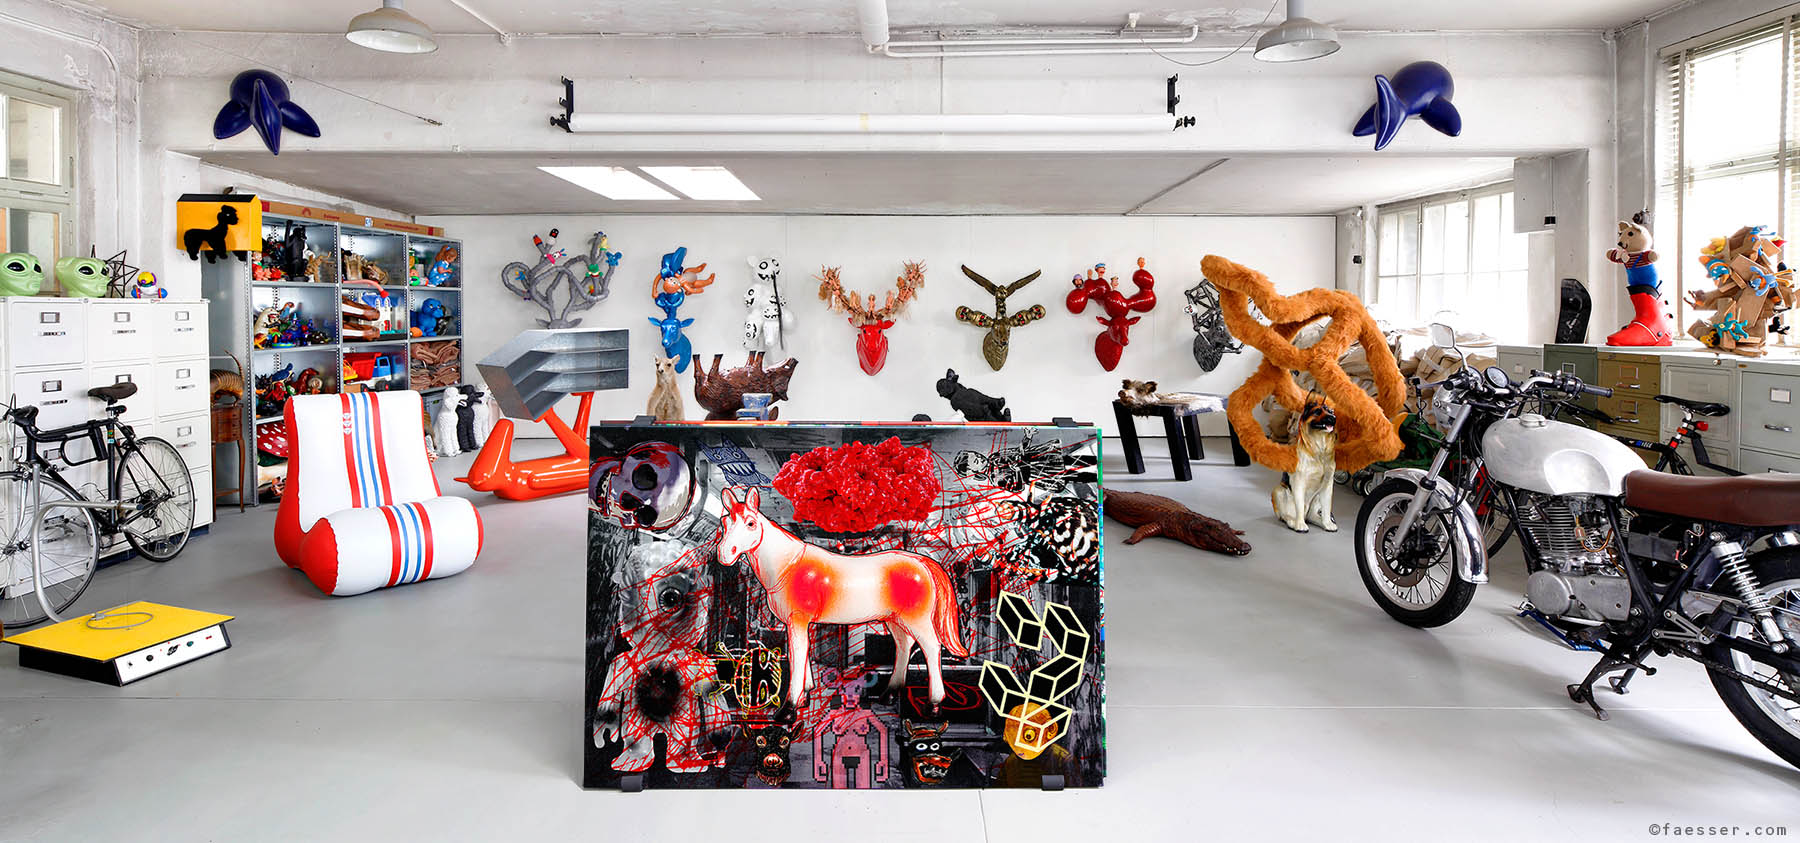 Gallery with trophies, sculptures and a digital painting at studio Zurich; works of art as figurative sculptures and digital paintings; artist Roland Faesser, sculptor and painter 2011